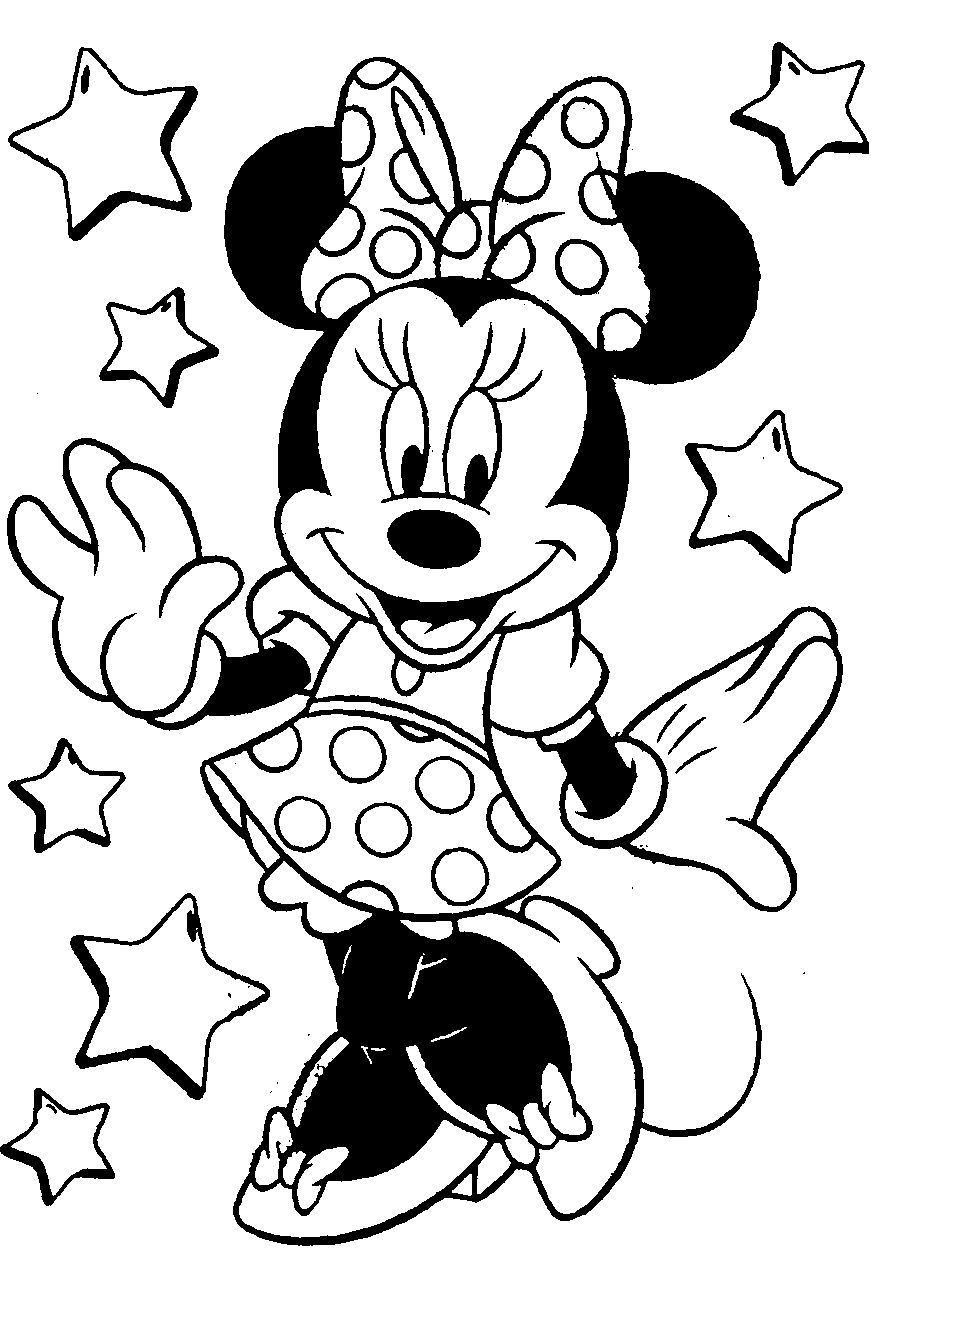 Coloring Pictures Of Minnie Mouse Mickey Mouse Coloring Pages Minnie Mouse Coloring Pages Mickey Coloring Pages